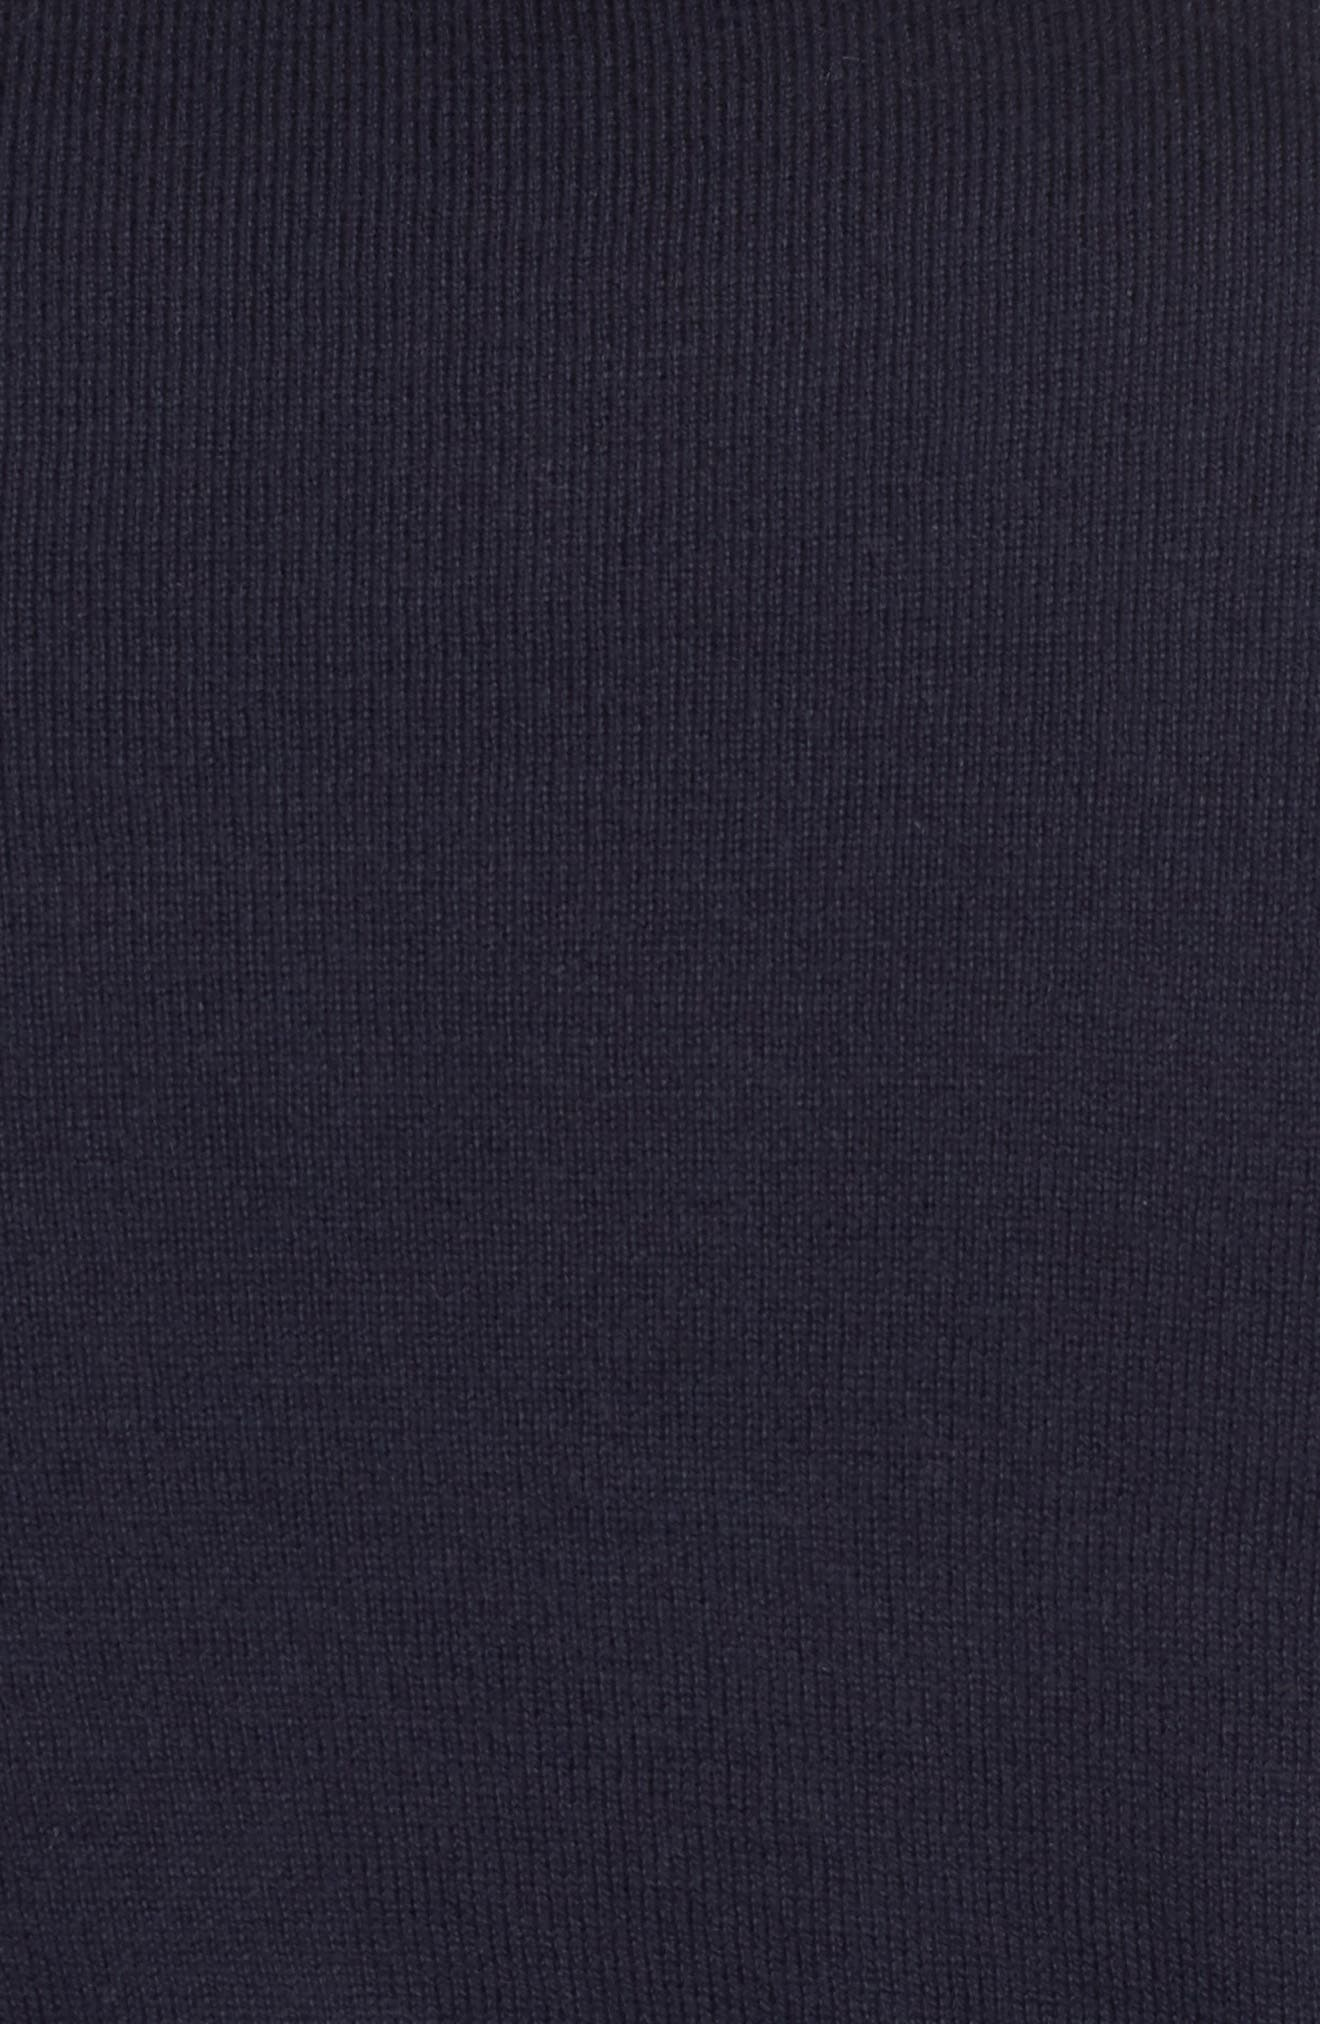 Saddle Shoulder Cotton & Cashmere V-Neck Sweater,                             Alternate thumbnail 5, color,                             Navy Night